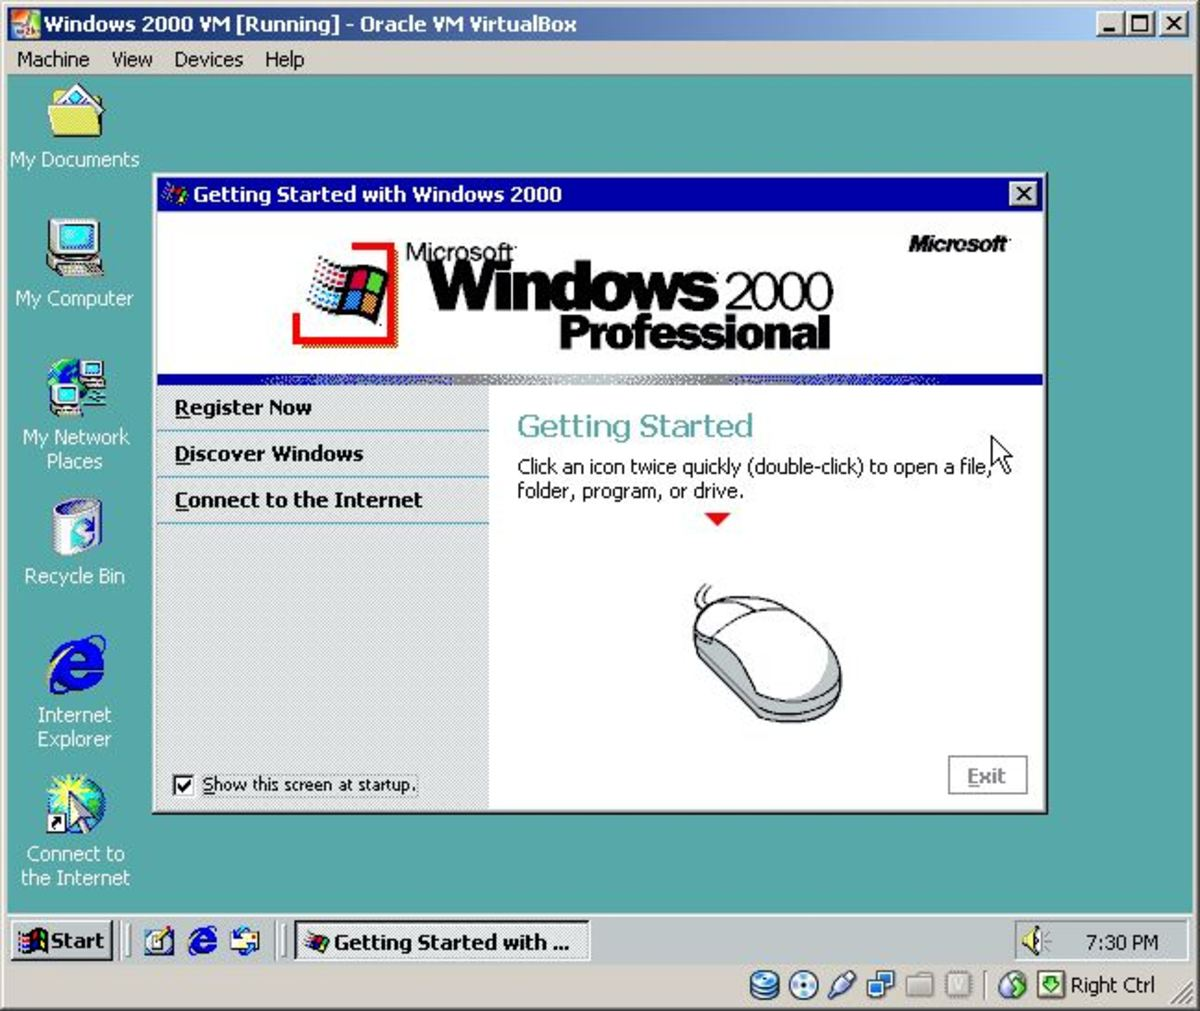 Install Windows 2000 Professional In Oracle VM VirtualBox | TurboFuture